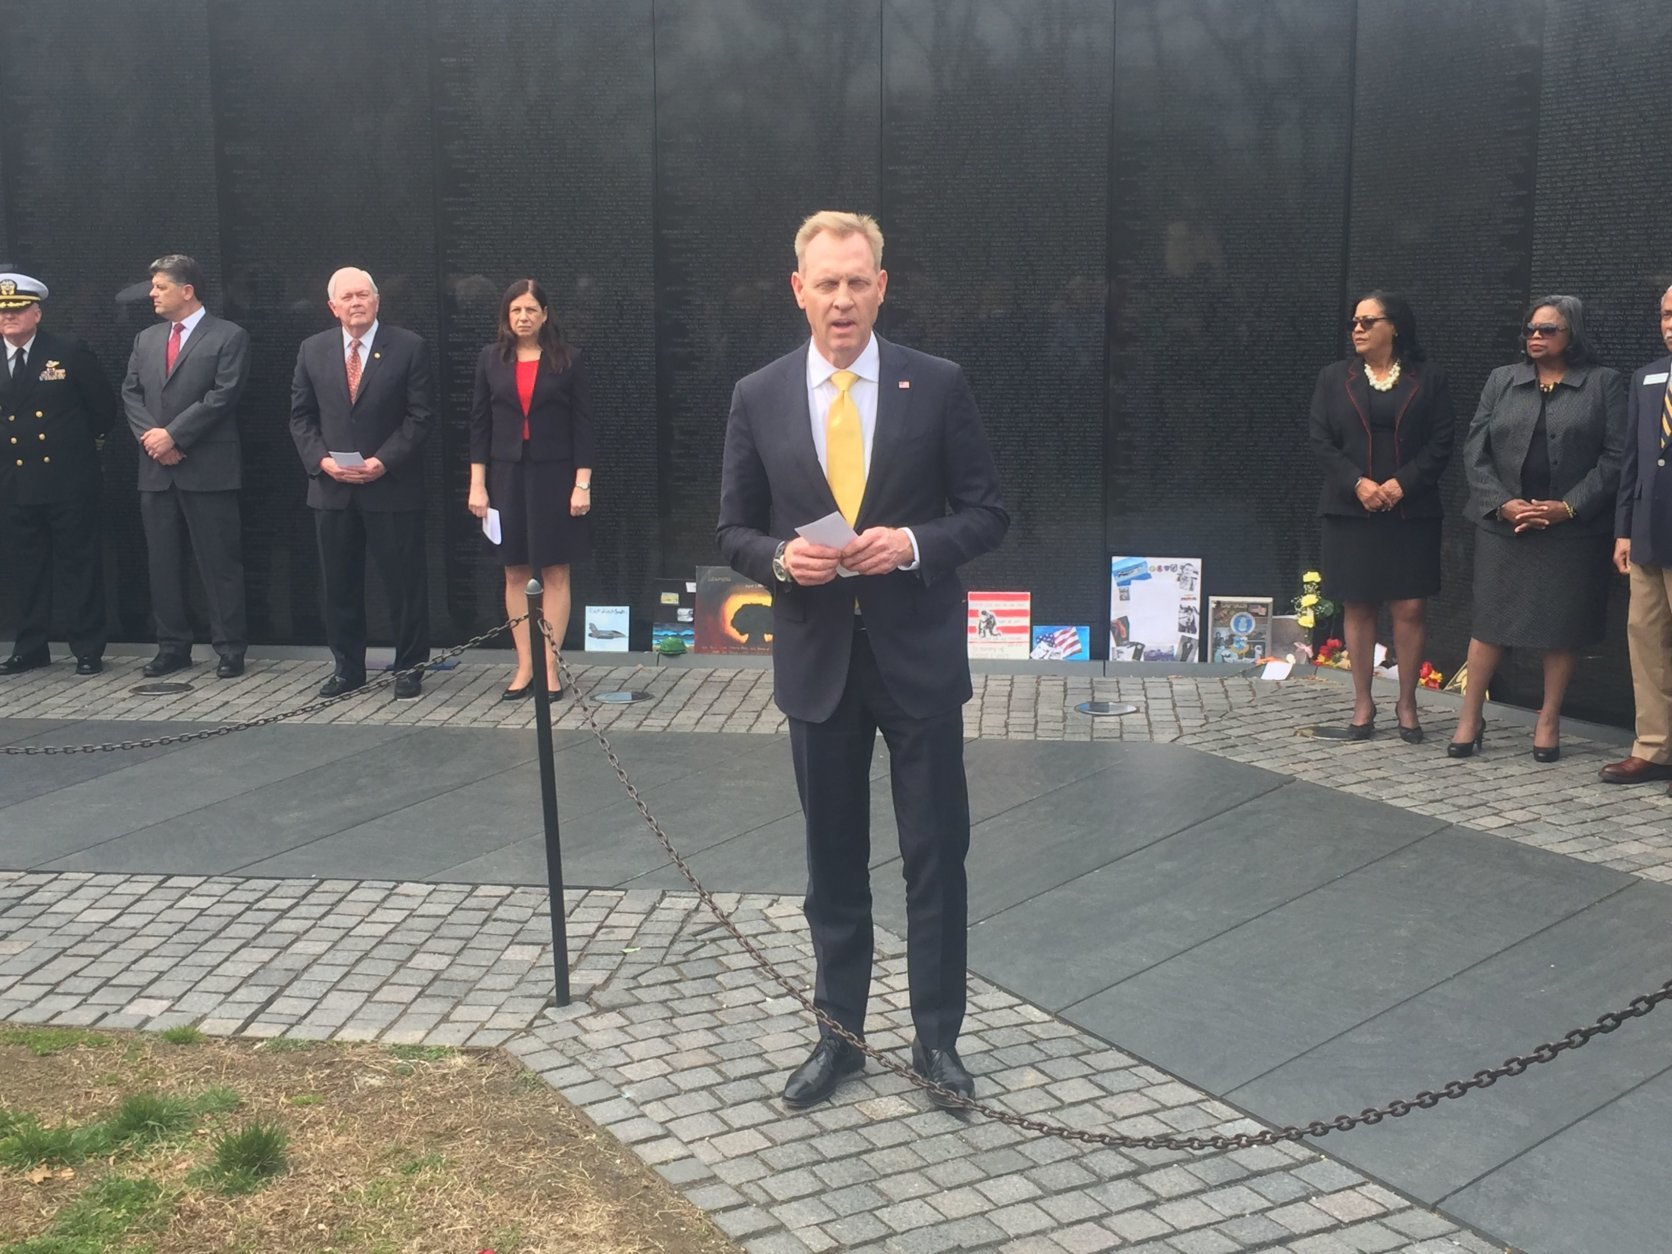 Deputy Defense Secretary Pat Shanahan delivers remarks at Thursday's ceremony. (WTOP/Mike Murillo)